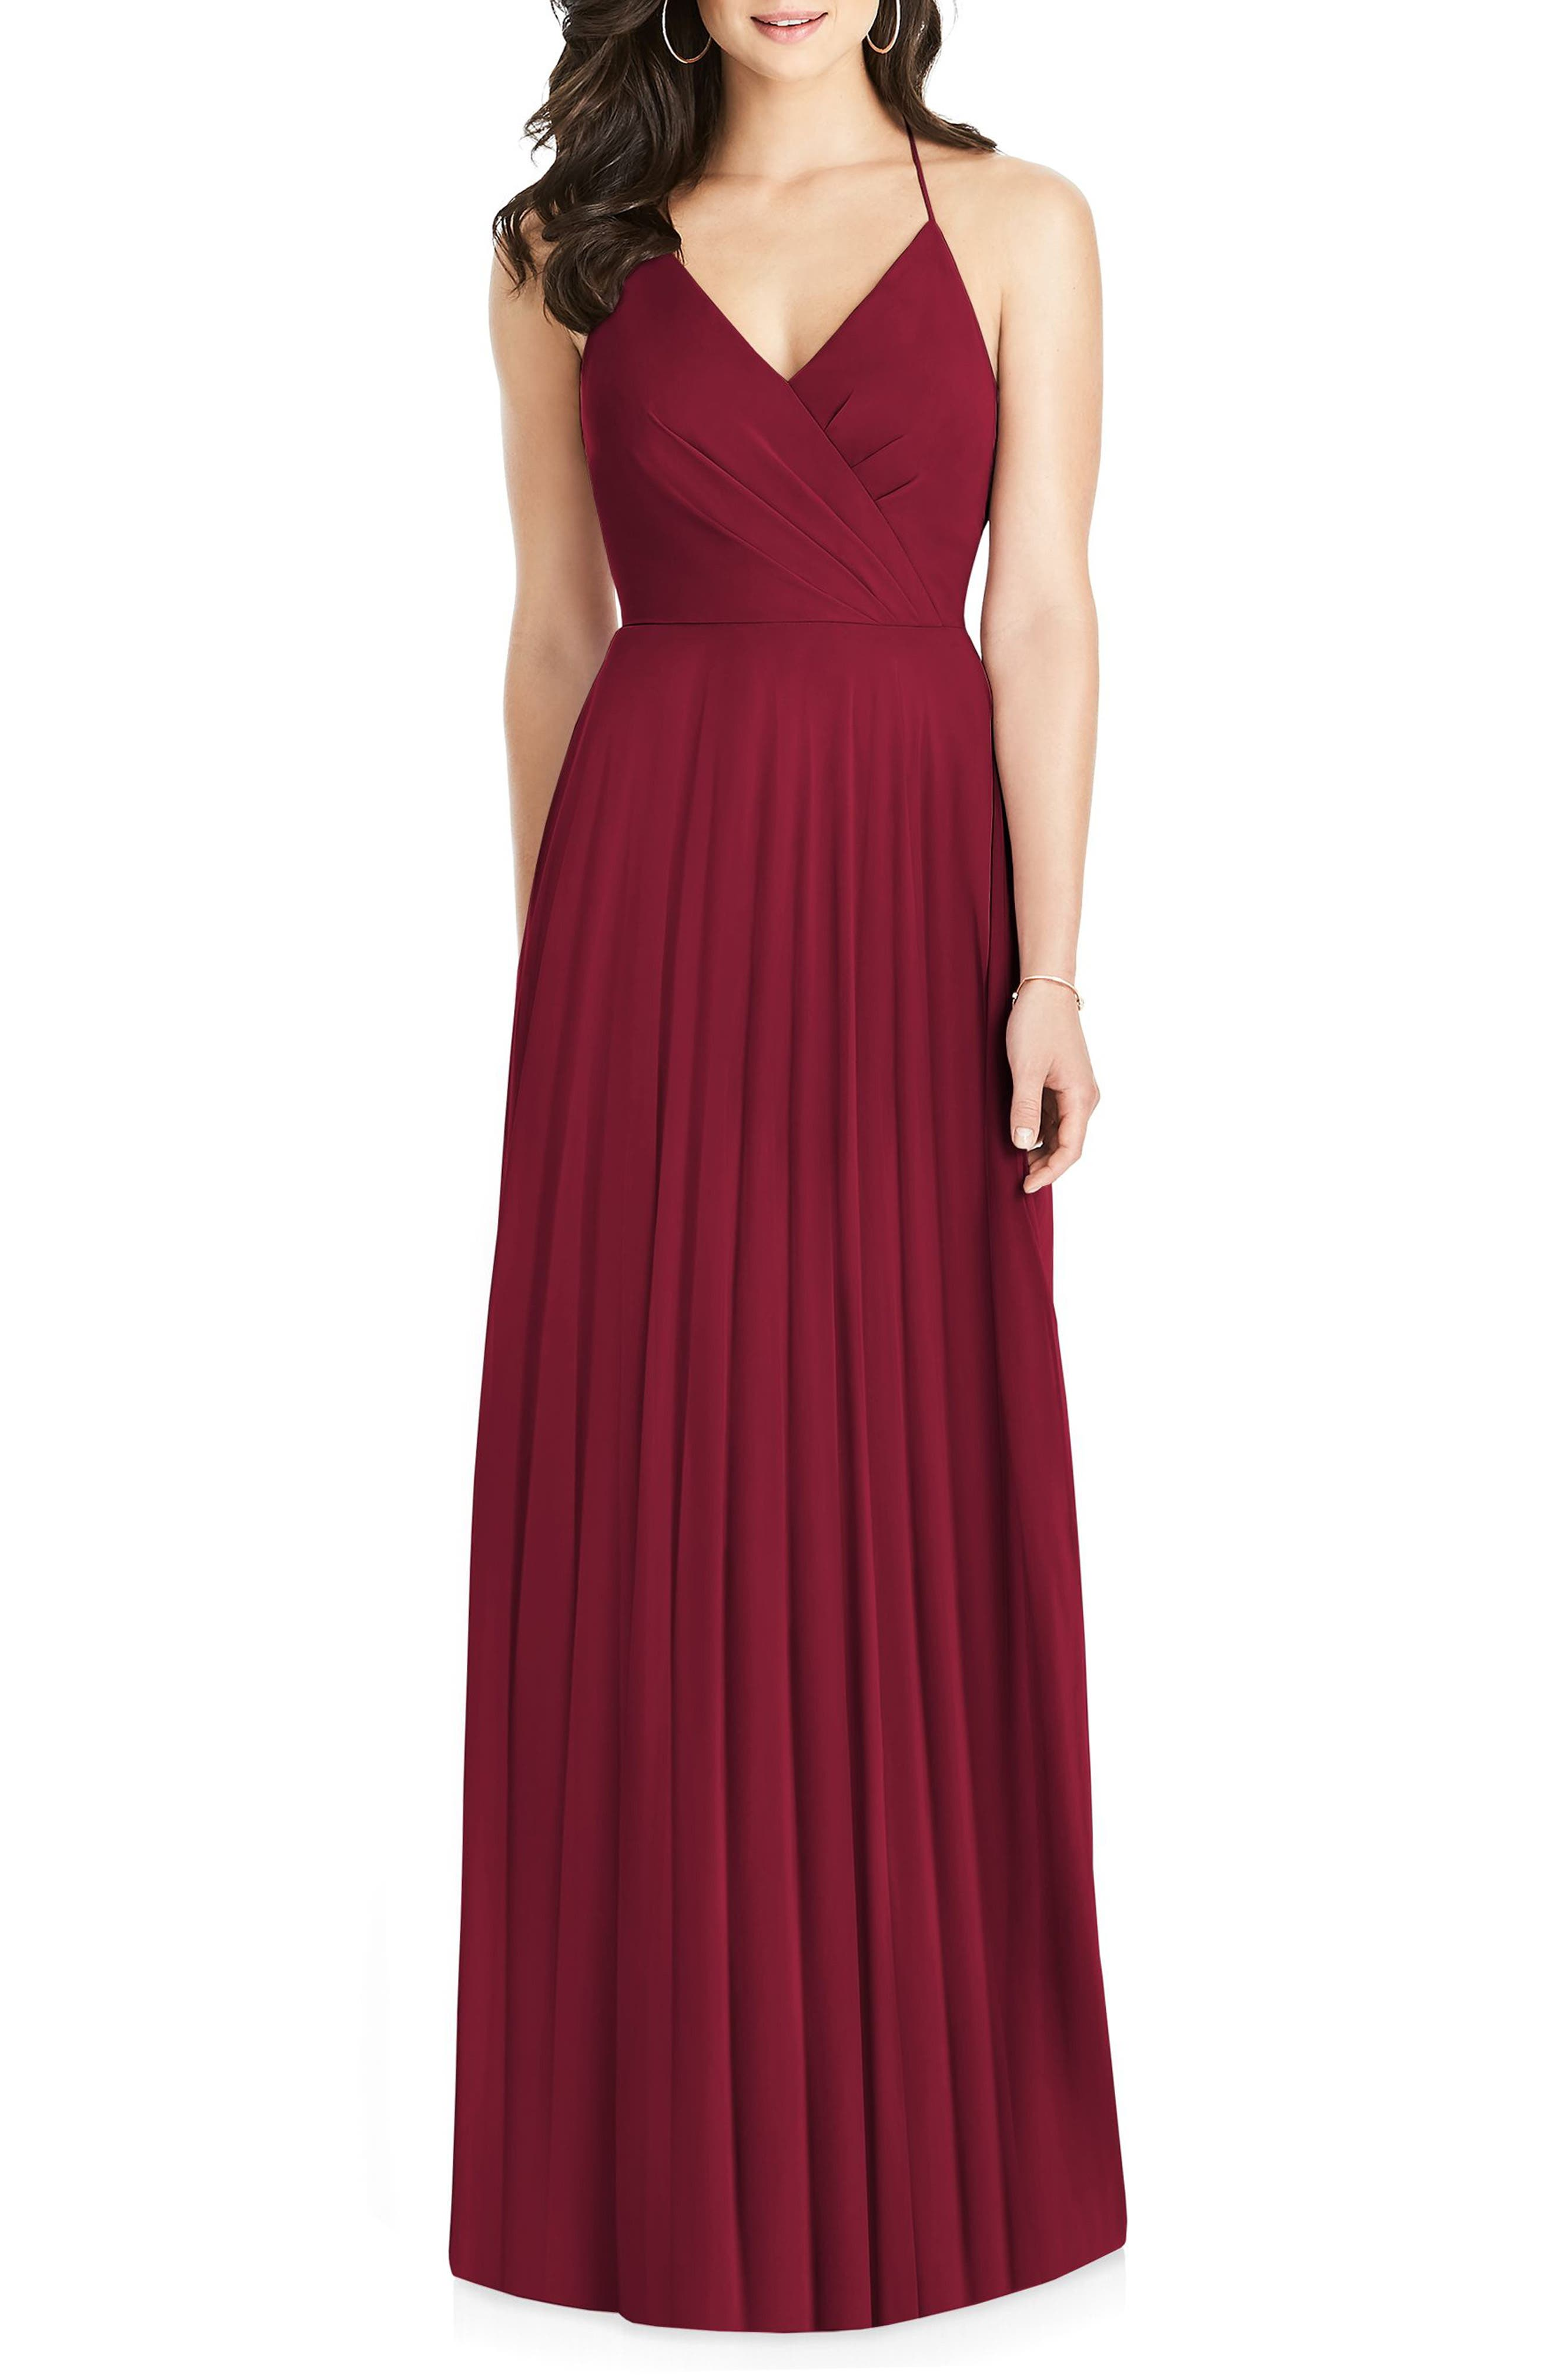 Alternate Image 1 Selected - Dessy Collection Ruffle Back Chiffon Gown